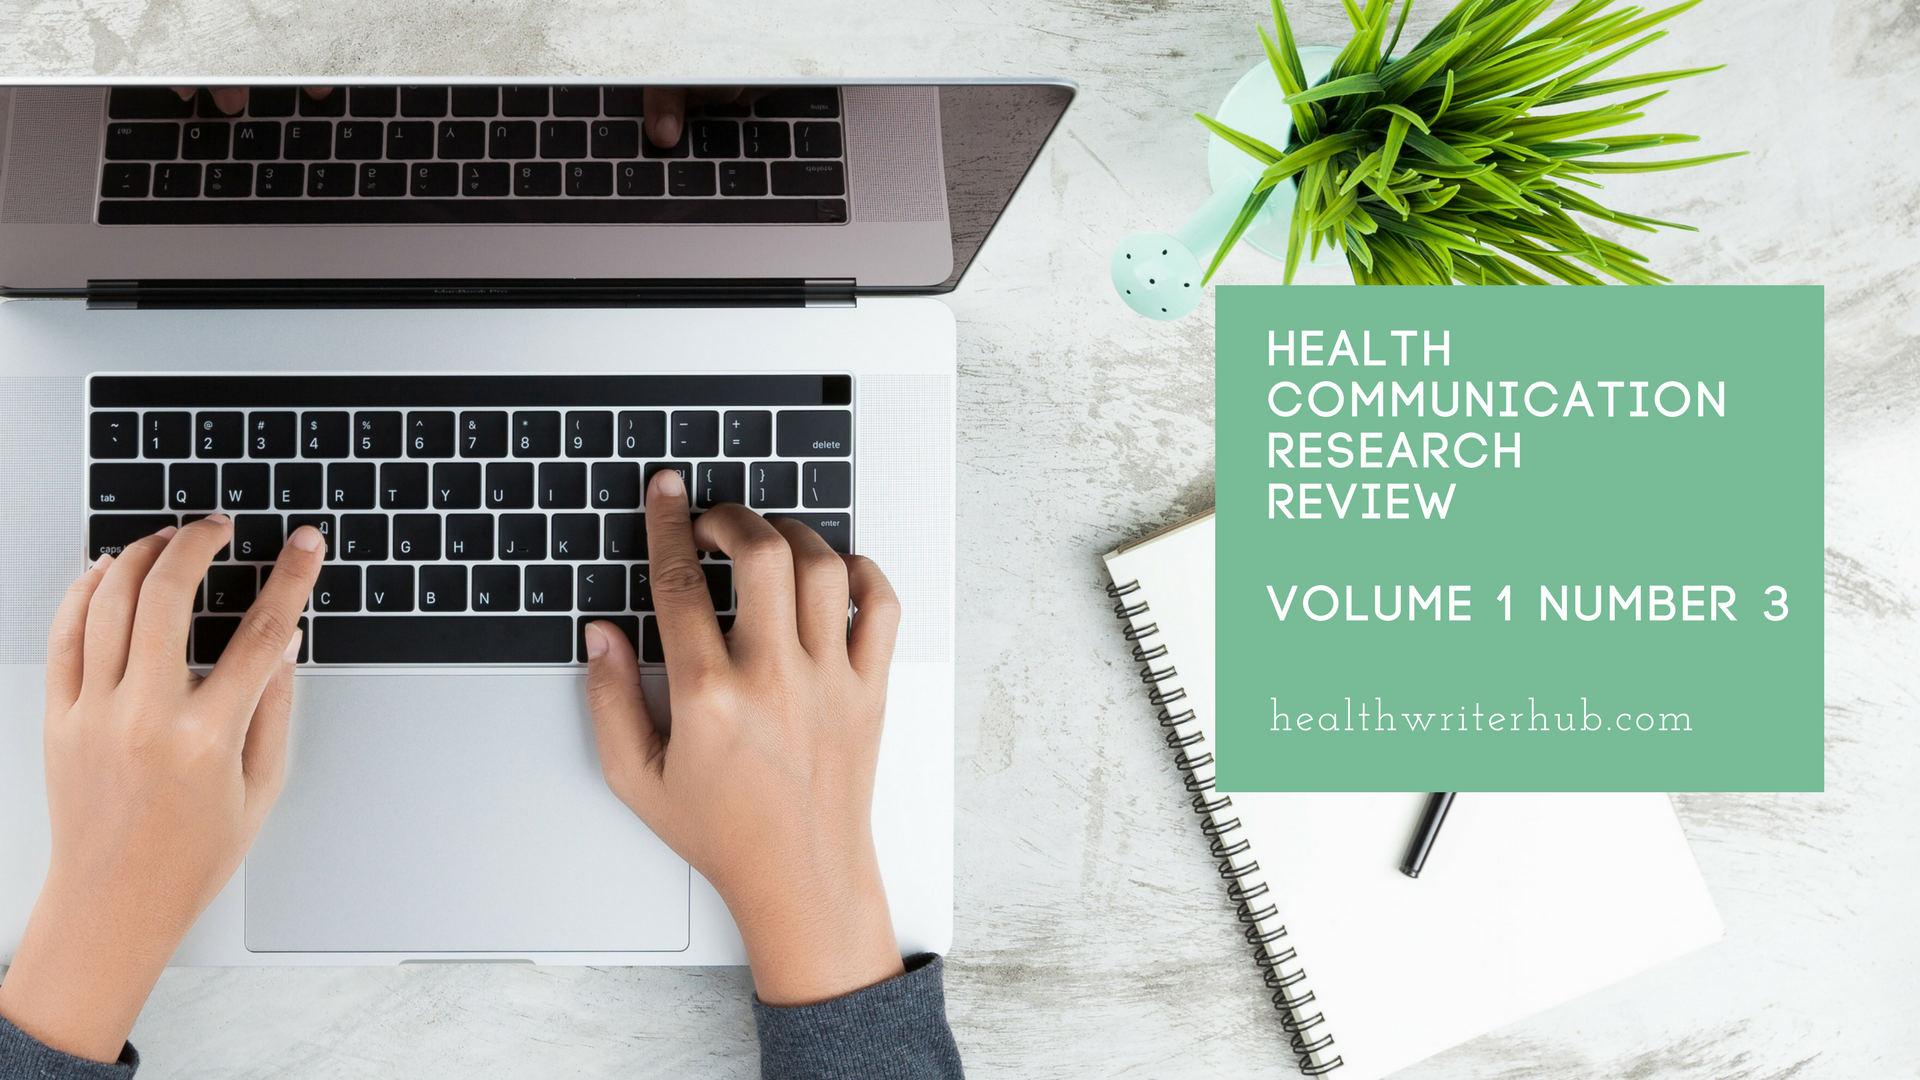 health communication research review volume 1 number 3